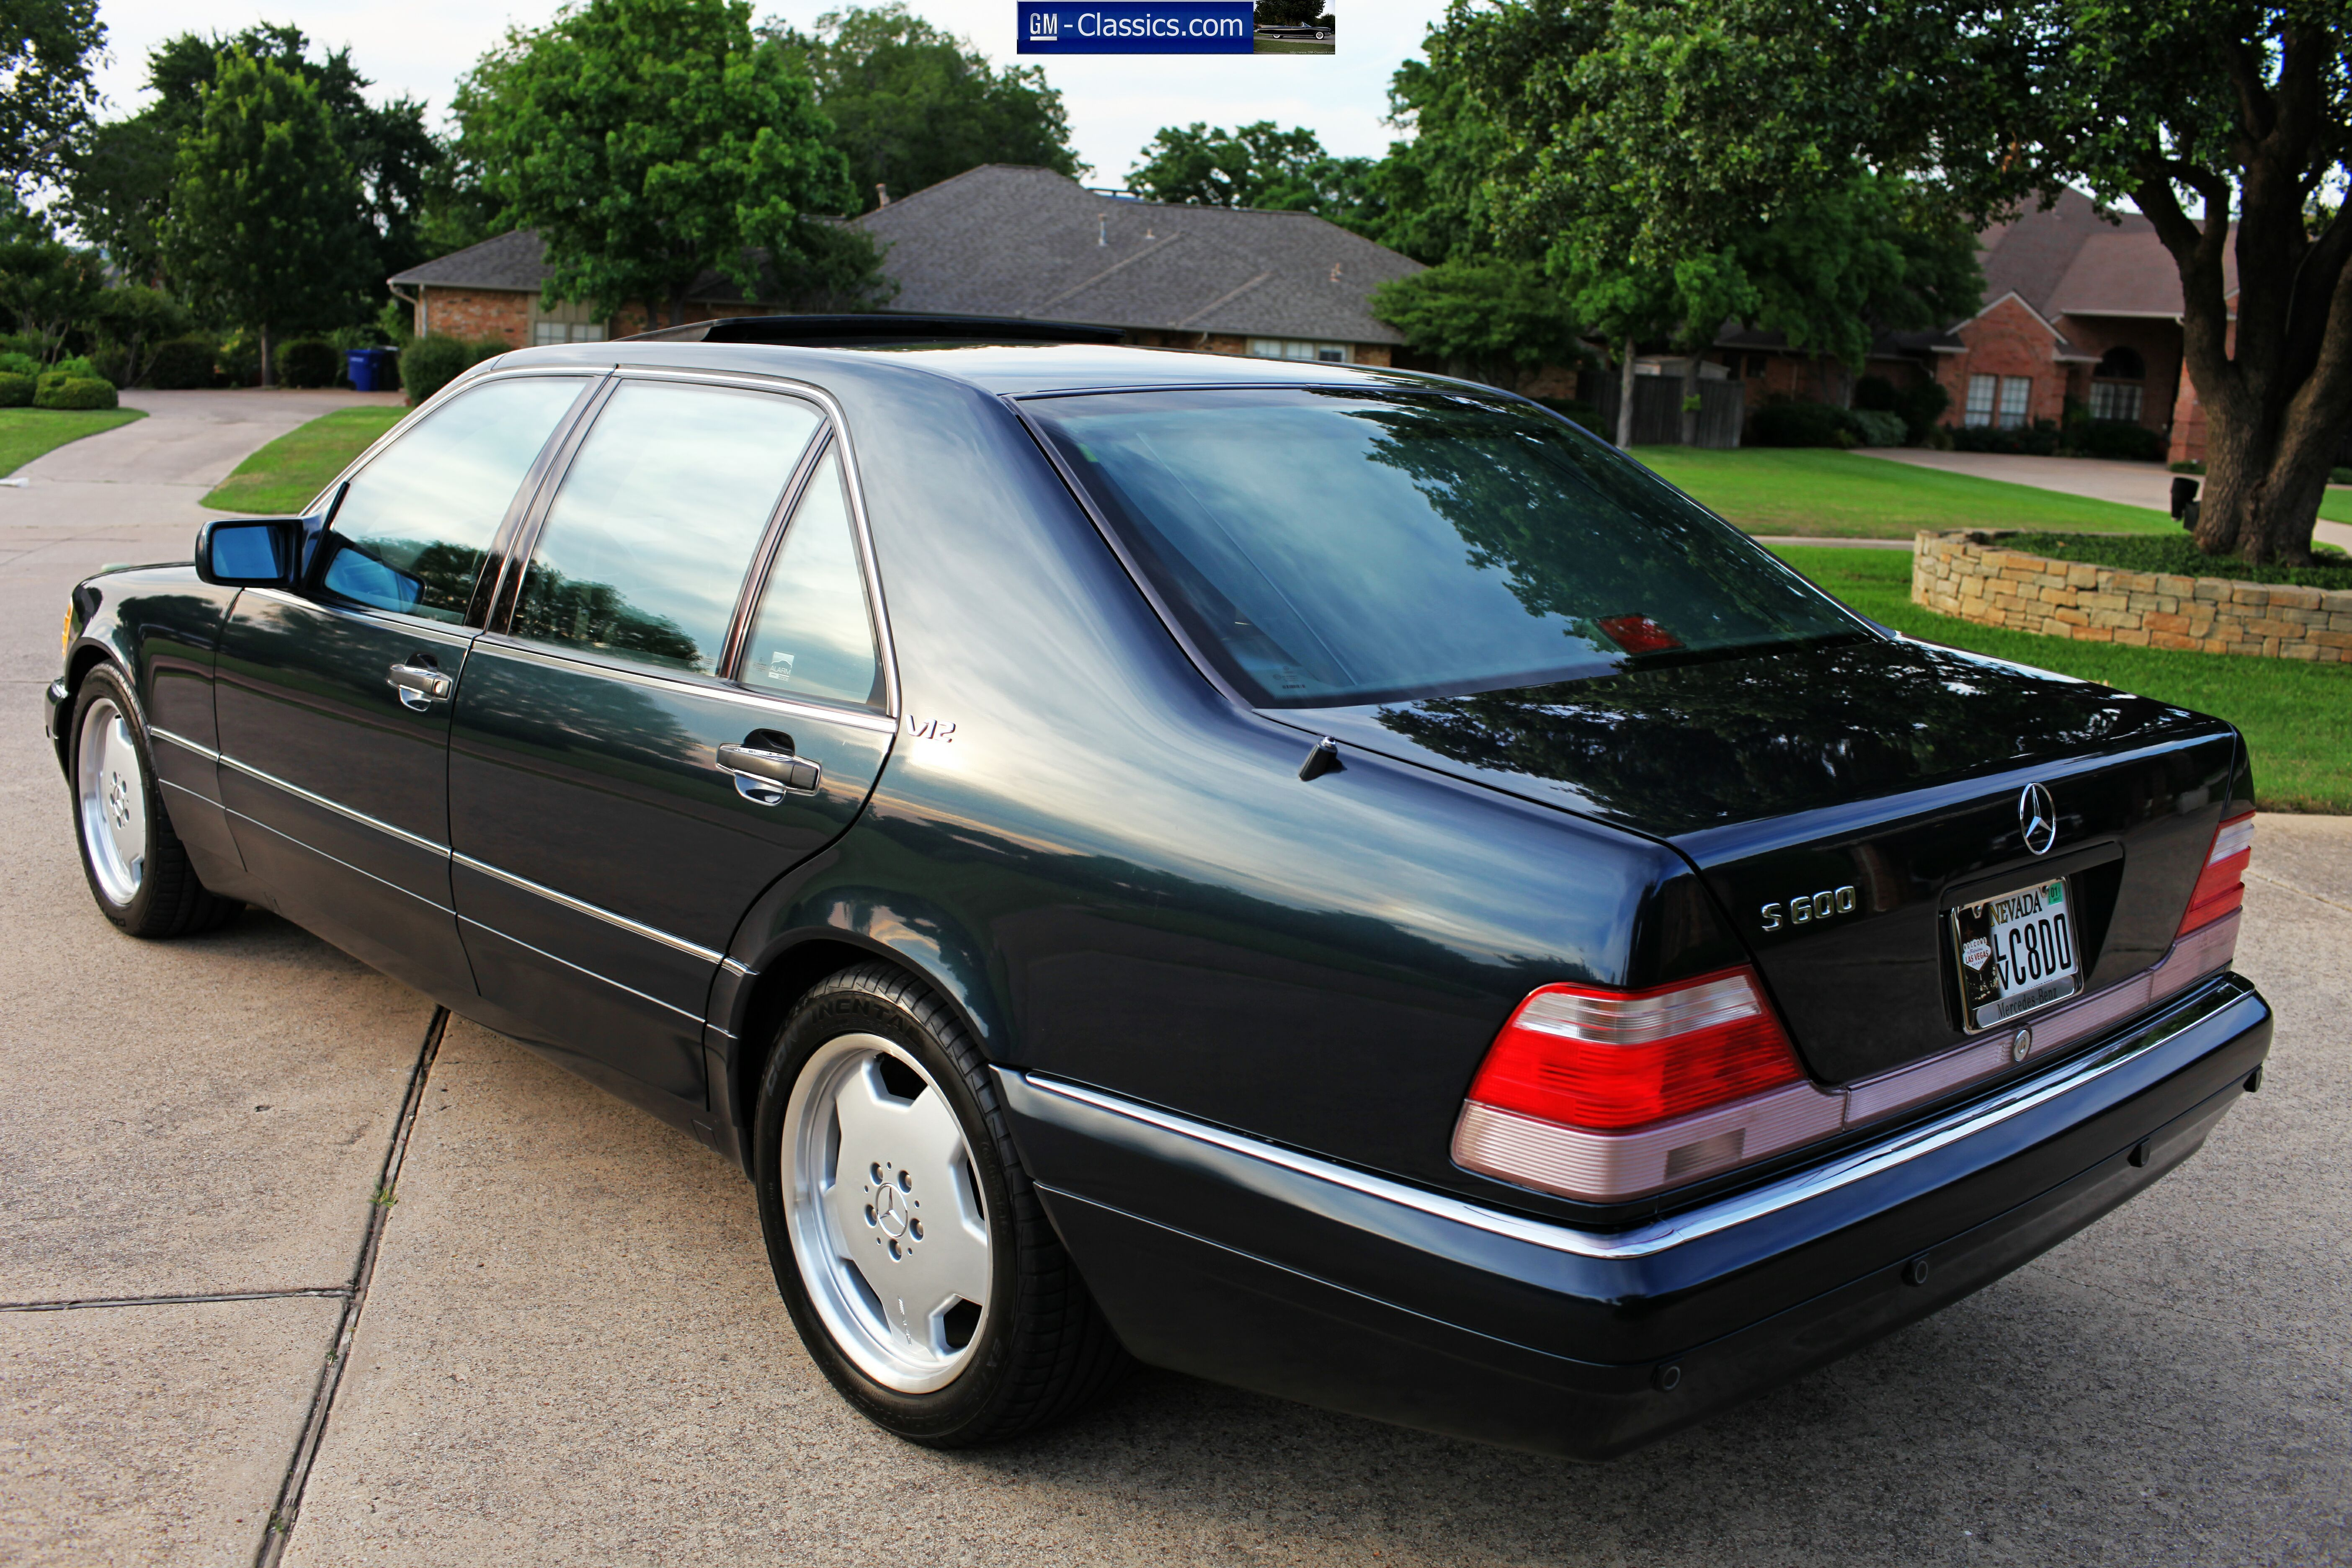 1998 Mercedes Benz S600 W140 With Images Mercedes Benz Cars